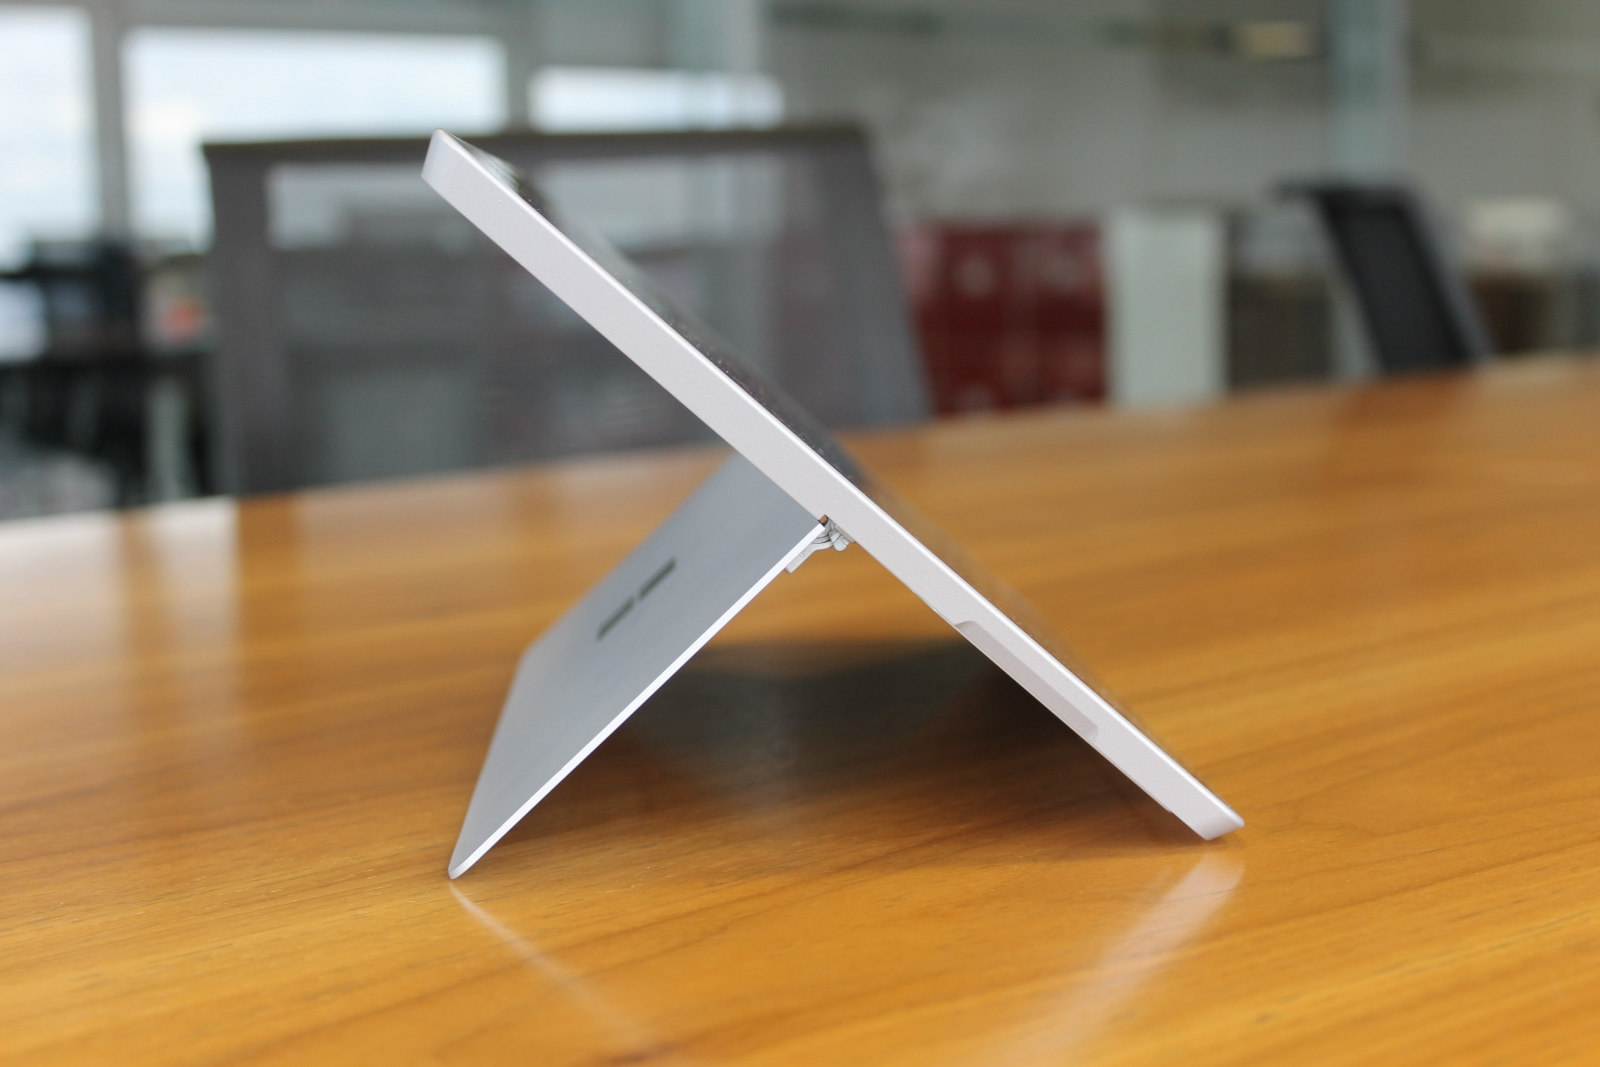 Microsoft Surface 3 kickstand review